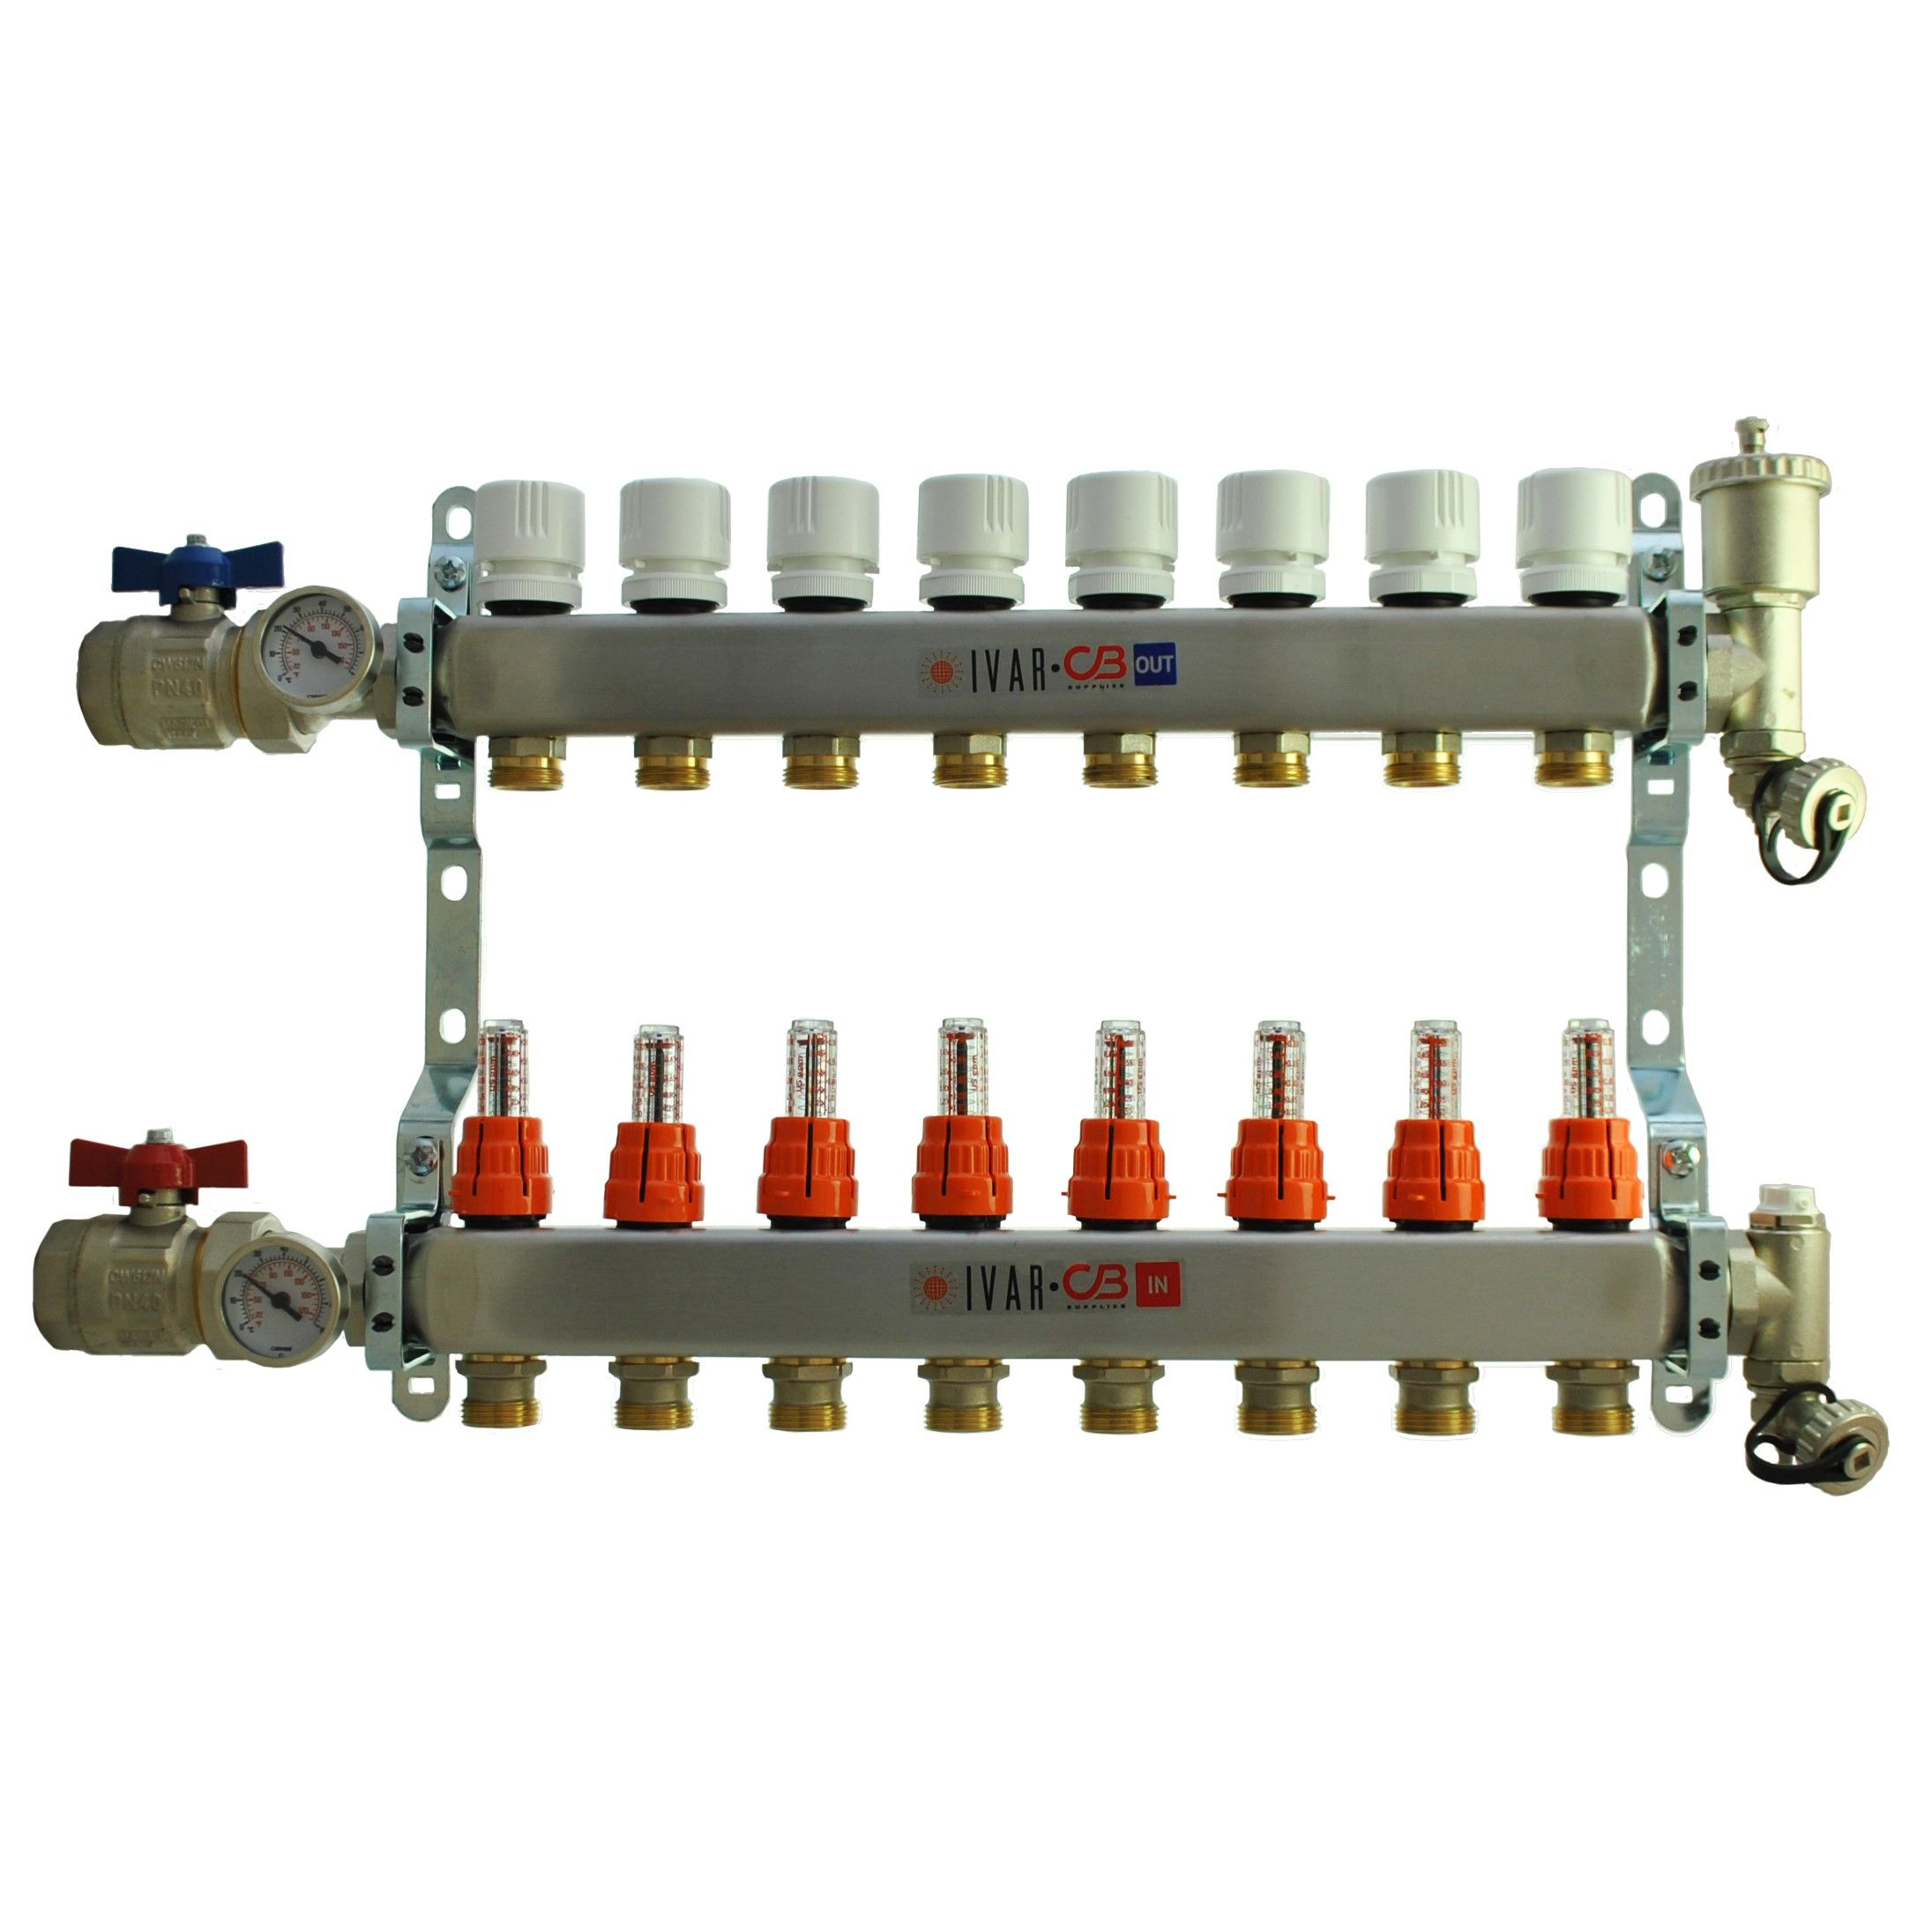 8 Port Manifold with 1/2